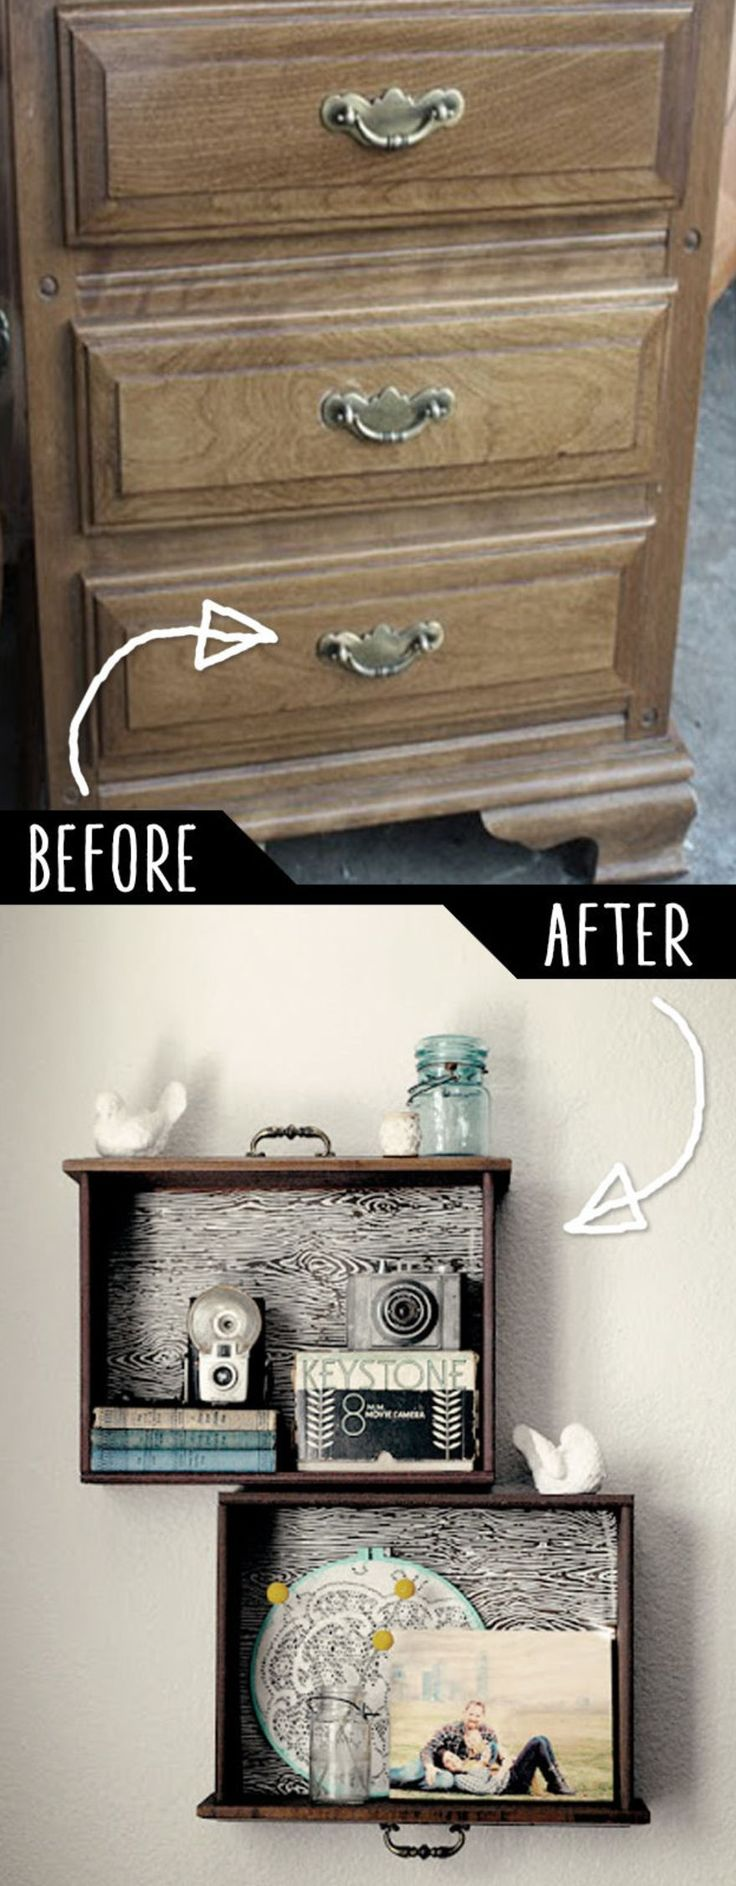 2670 best DIY nice ideas images on Pinterest | Good ideas, Upcycling ...